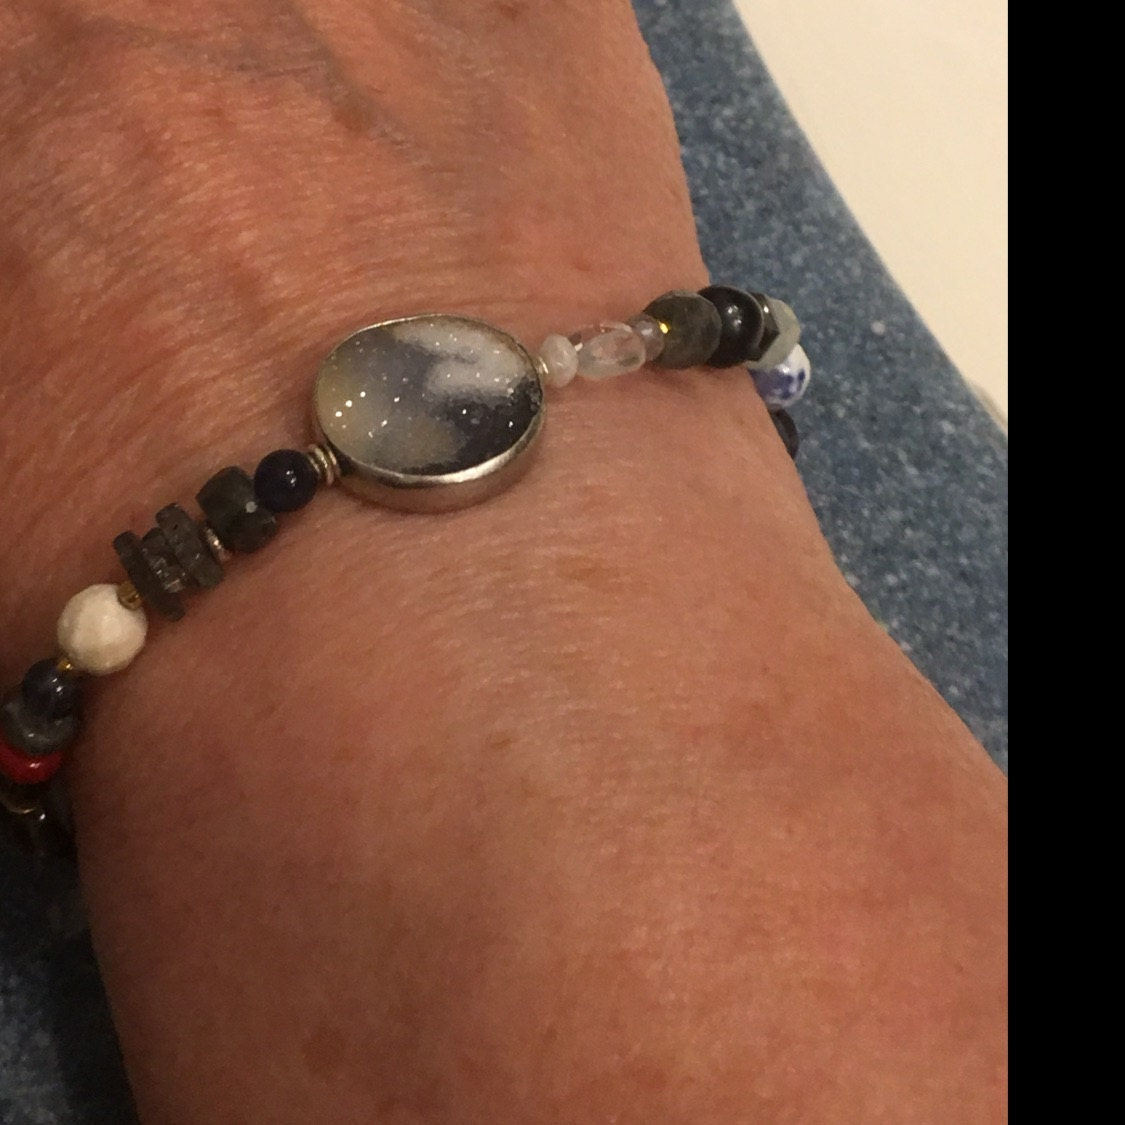 Terri Israel-Barlow added a photo of their purchase